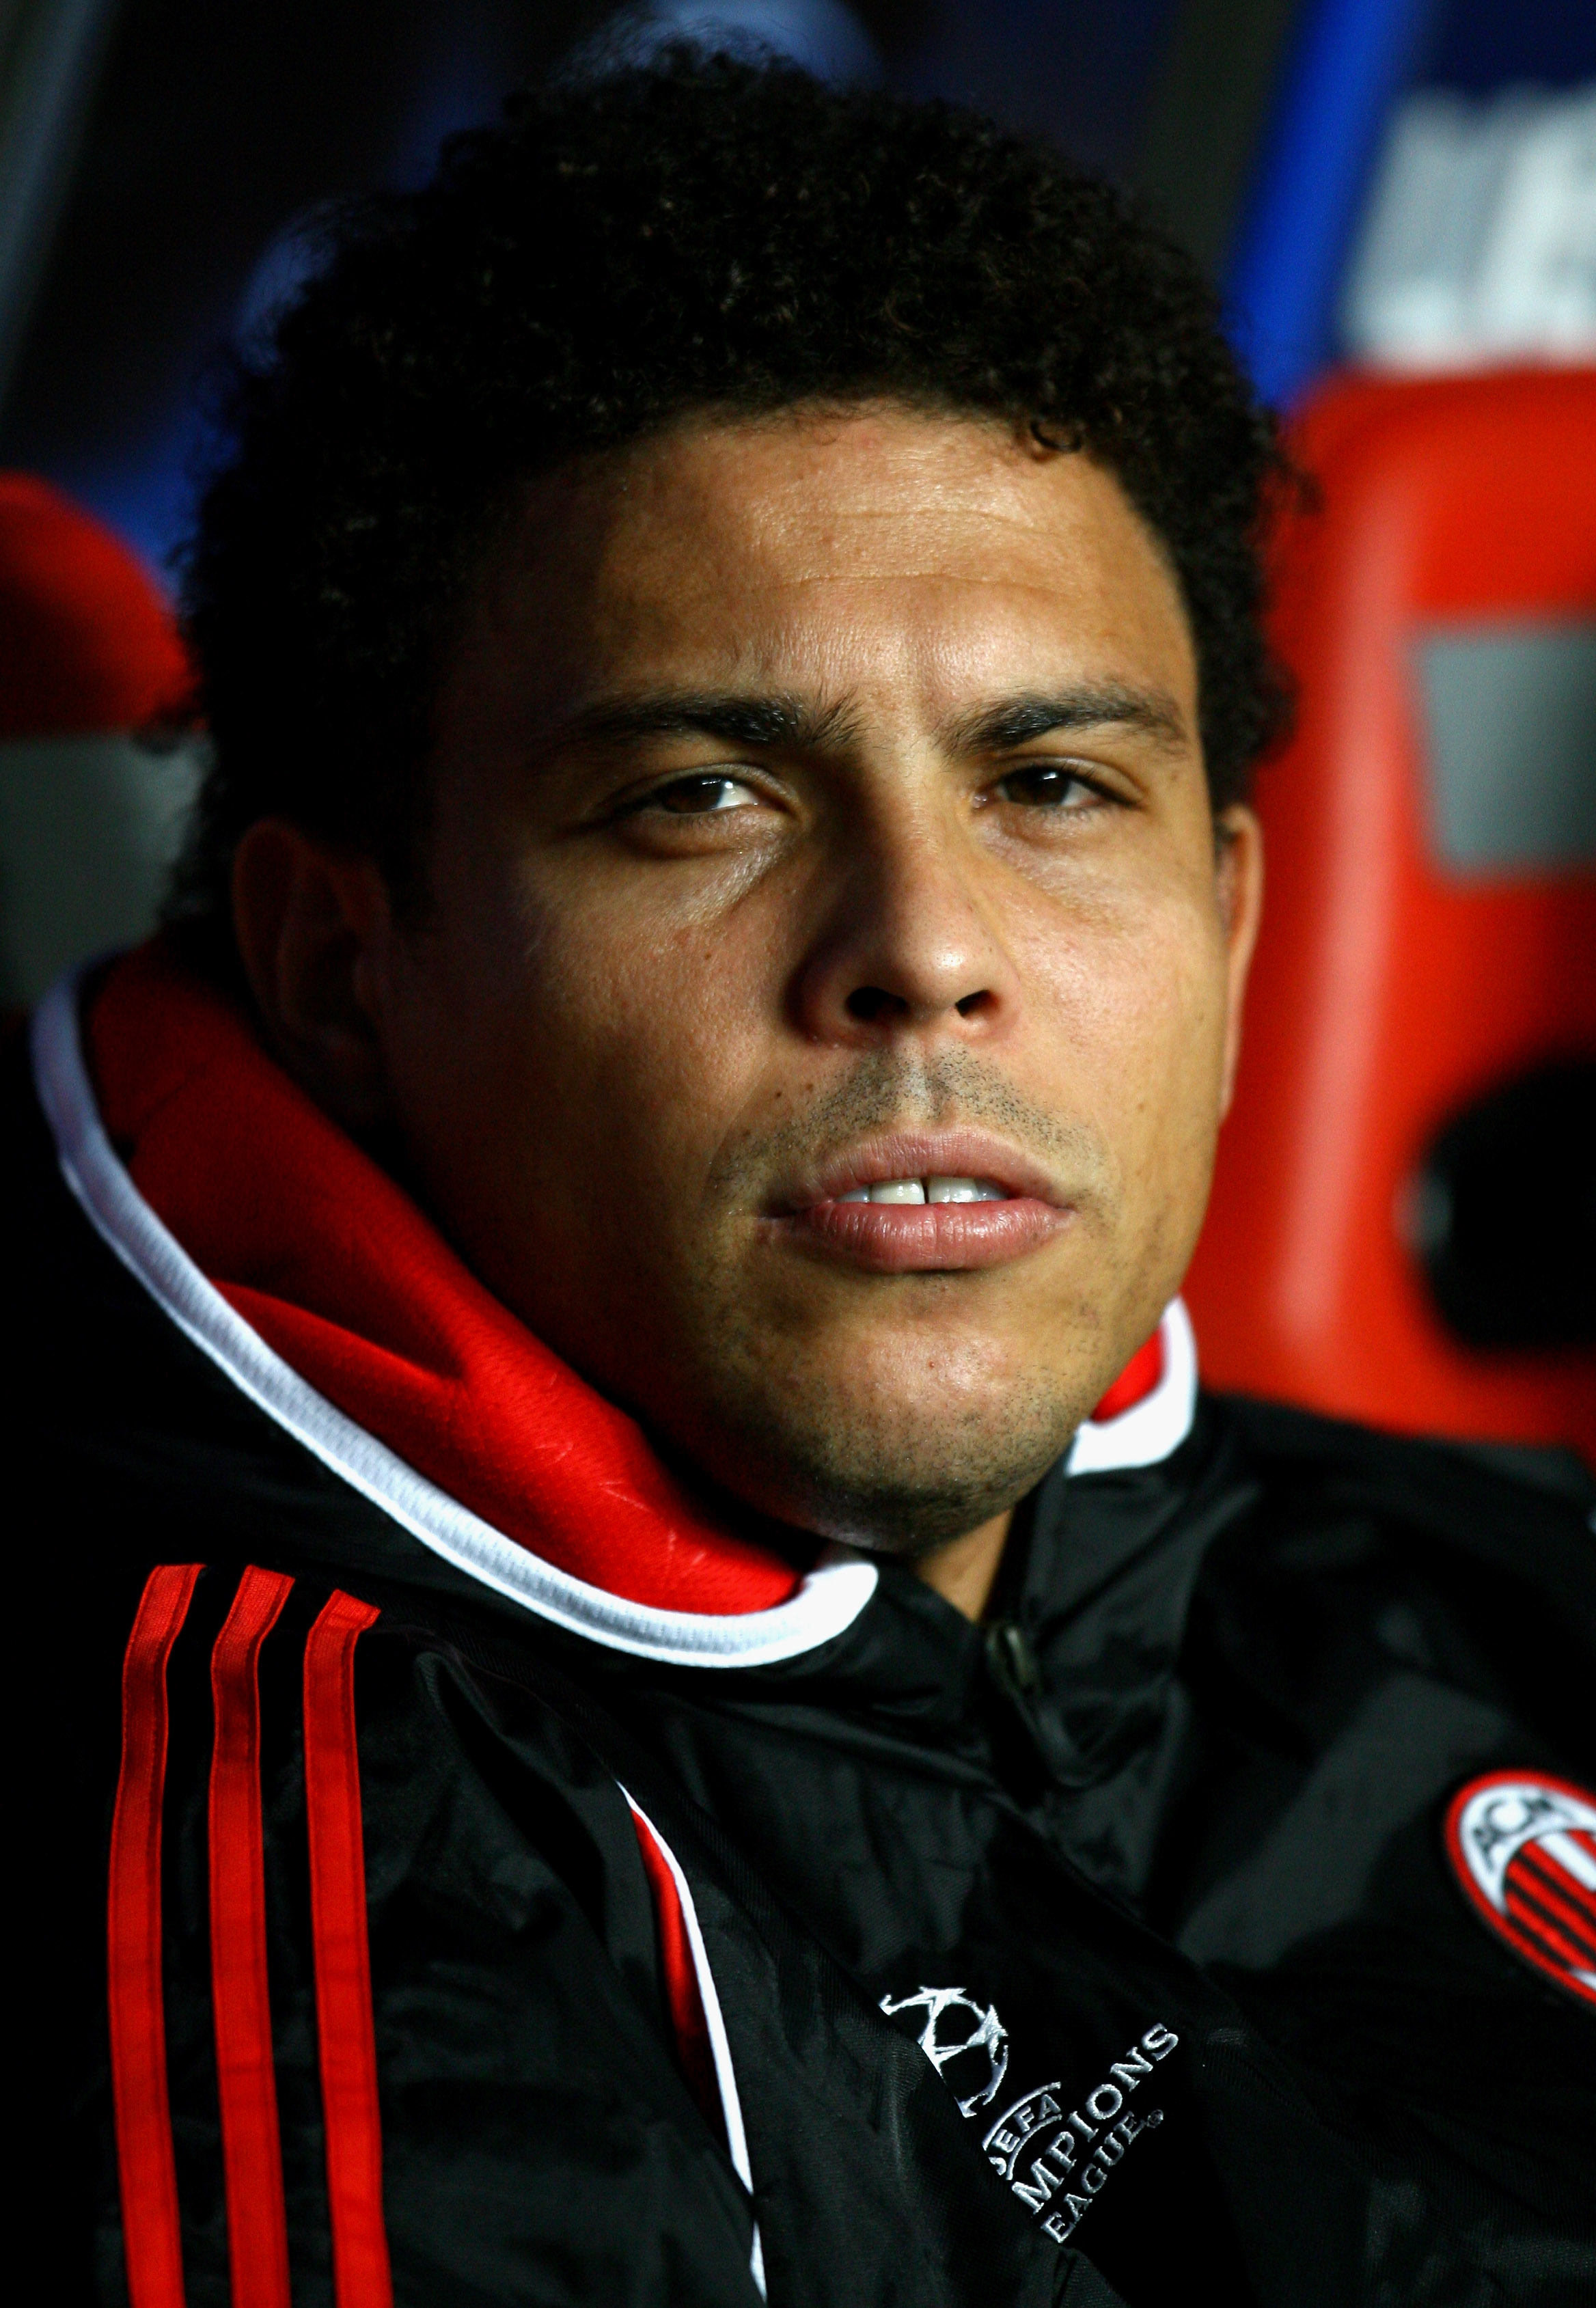 LISBON, PORTUGAL - NOVEMBER 28:  Ronaldo of AC Milan looks on from the substitutes bench before the kick off of the UEFA Champions League Group D match between Benfica and AC Milan at the Luz Stadium on November 28, 2007 in Lisbon, Portugal.  (Photo by Pa